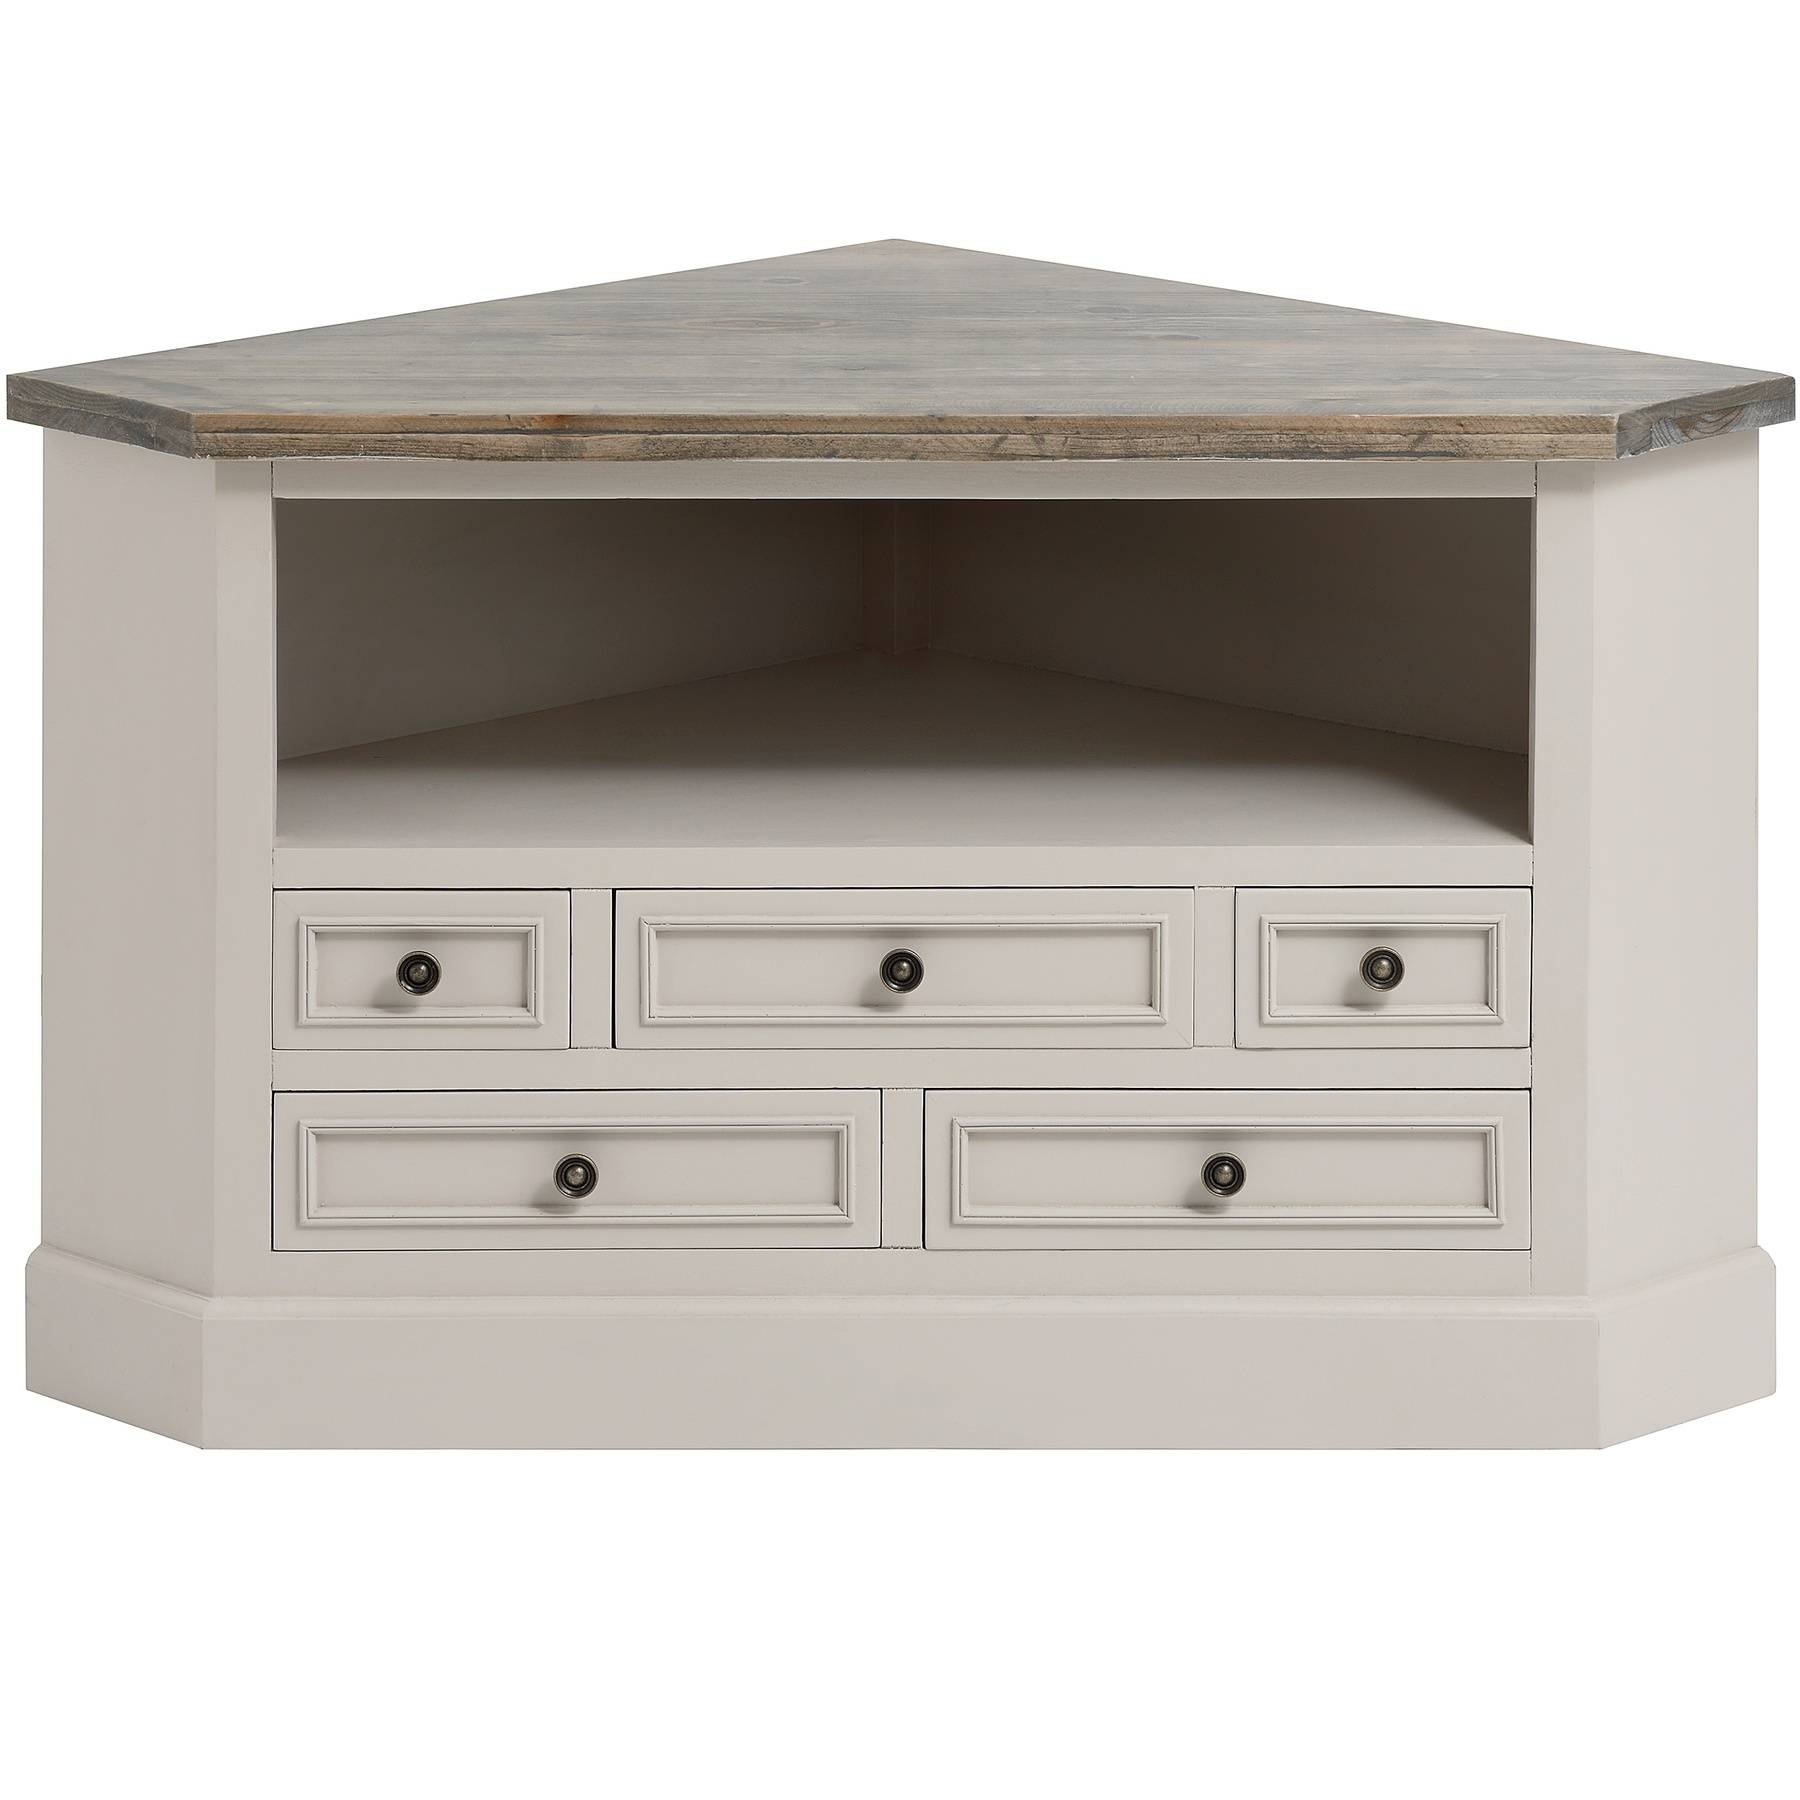 Rustic White Painted Walnut Wood Corner Tv Stand With Drawers Of Pertaining To White Corner Tv Cabinets (View 12 of 15)